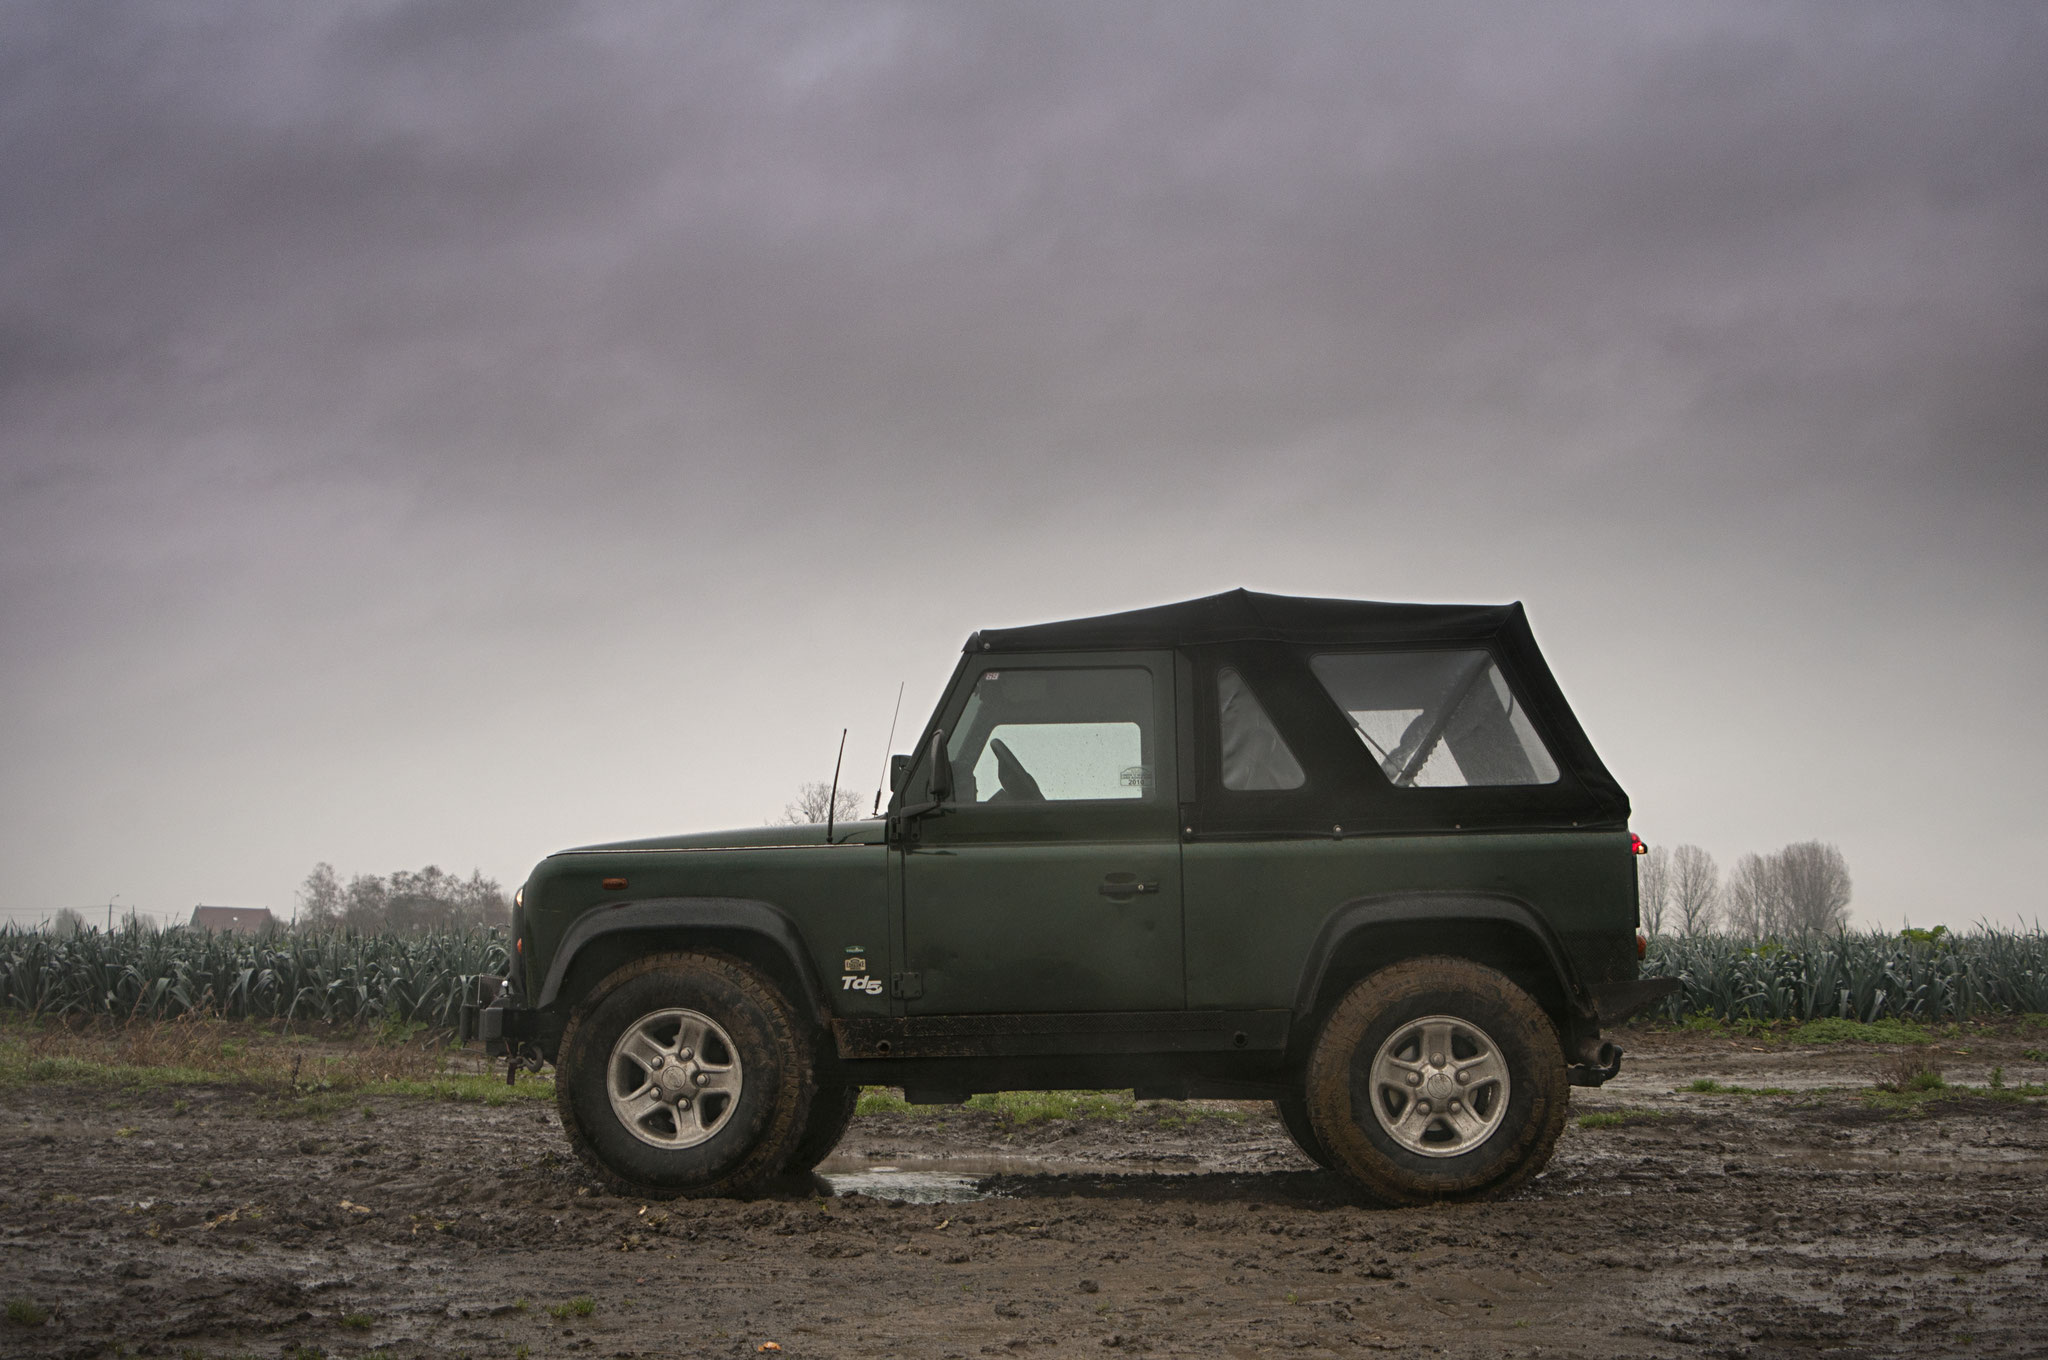 1046 - Land Rover - Defender - 4x4 - 2001